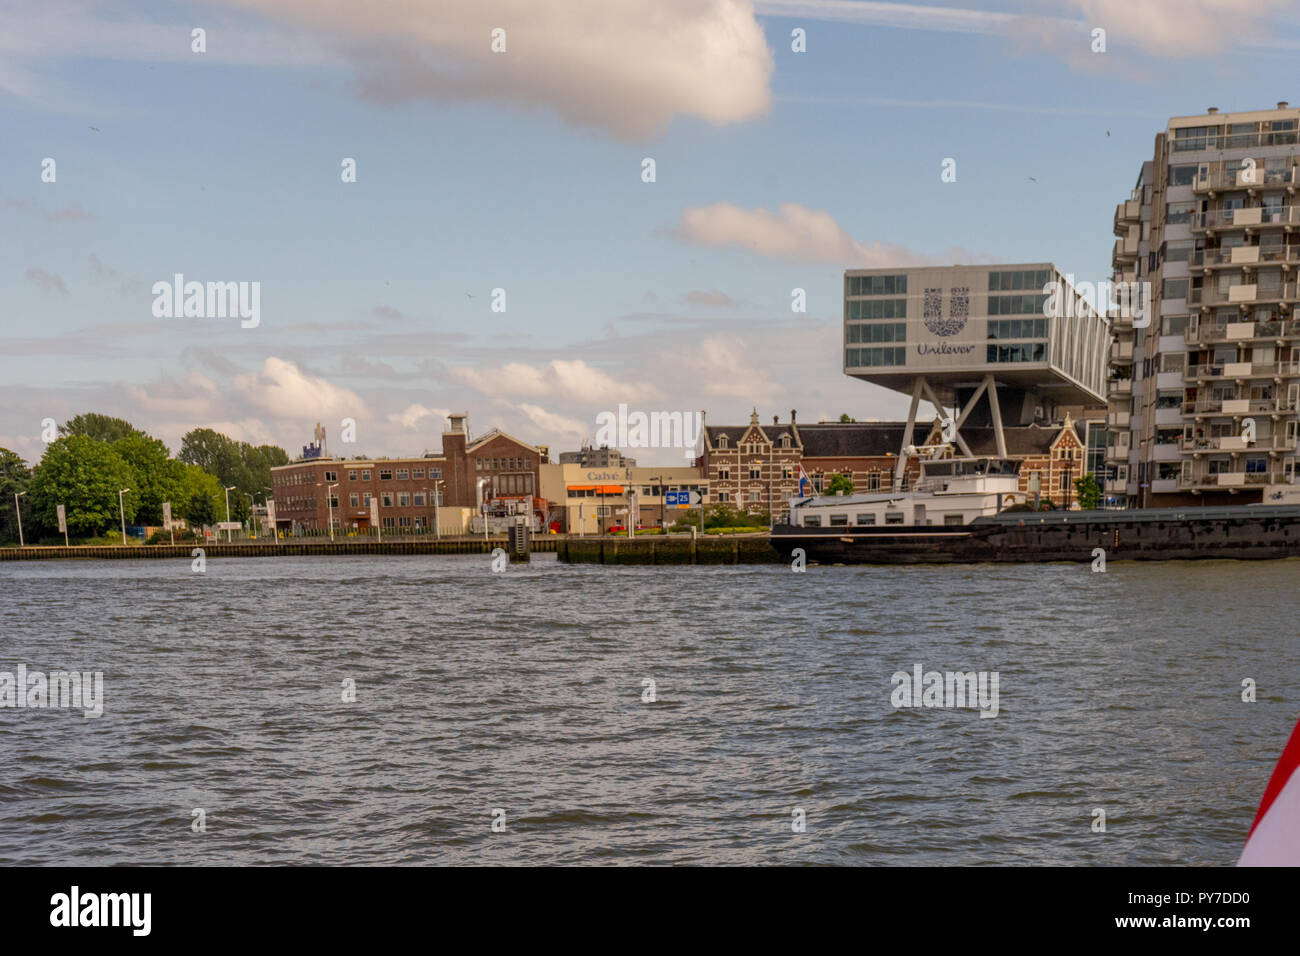 Rotterdam, Netherlands - 16 July, 2016: Netherlands dutch flag over the Unilever company.Unilever is a British-Dutch transnational consumer goods comp - Stock Image